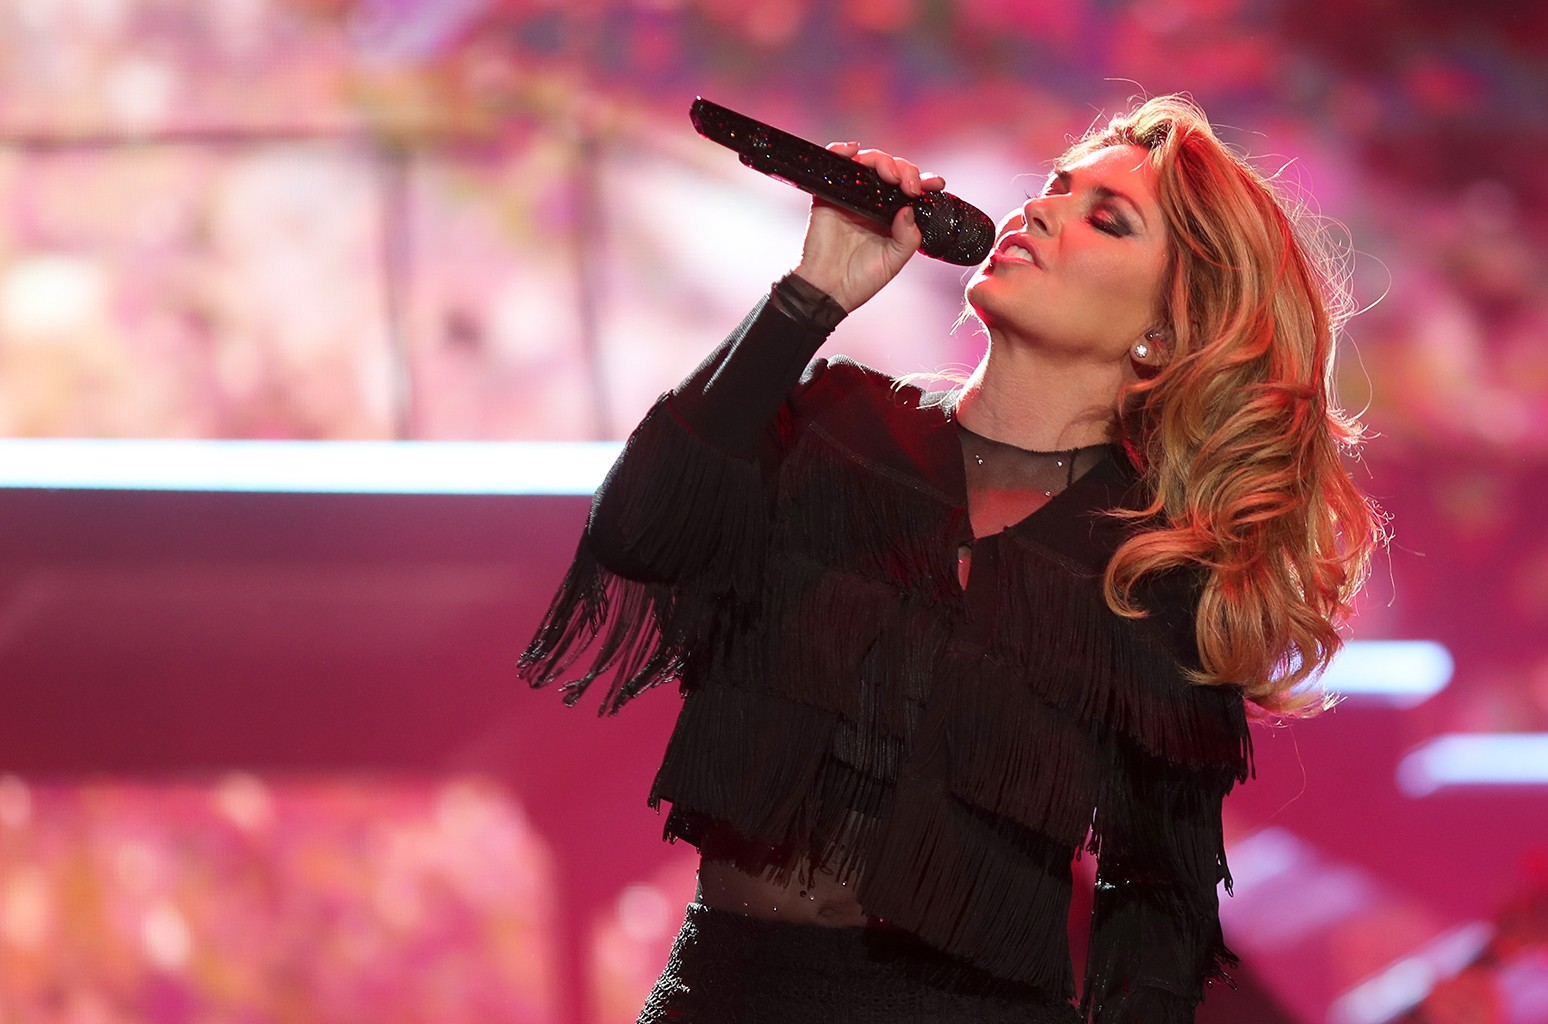 Shania Twain performs on the Toyota Mane Stage during day 2 of 2017 Stagecoach California's Country Music Festival at the Empire Polo Club on April 29, 2017 in Indio, Calif.